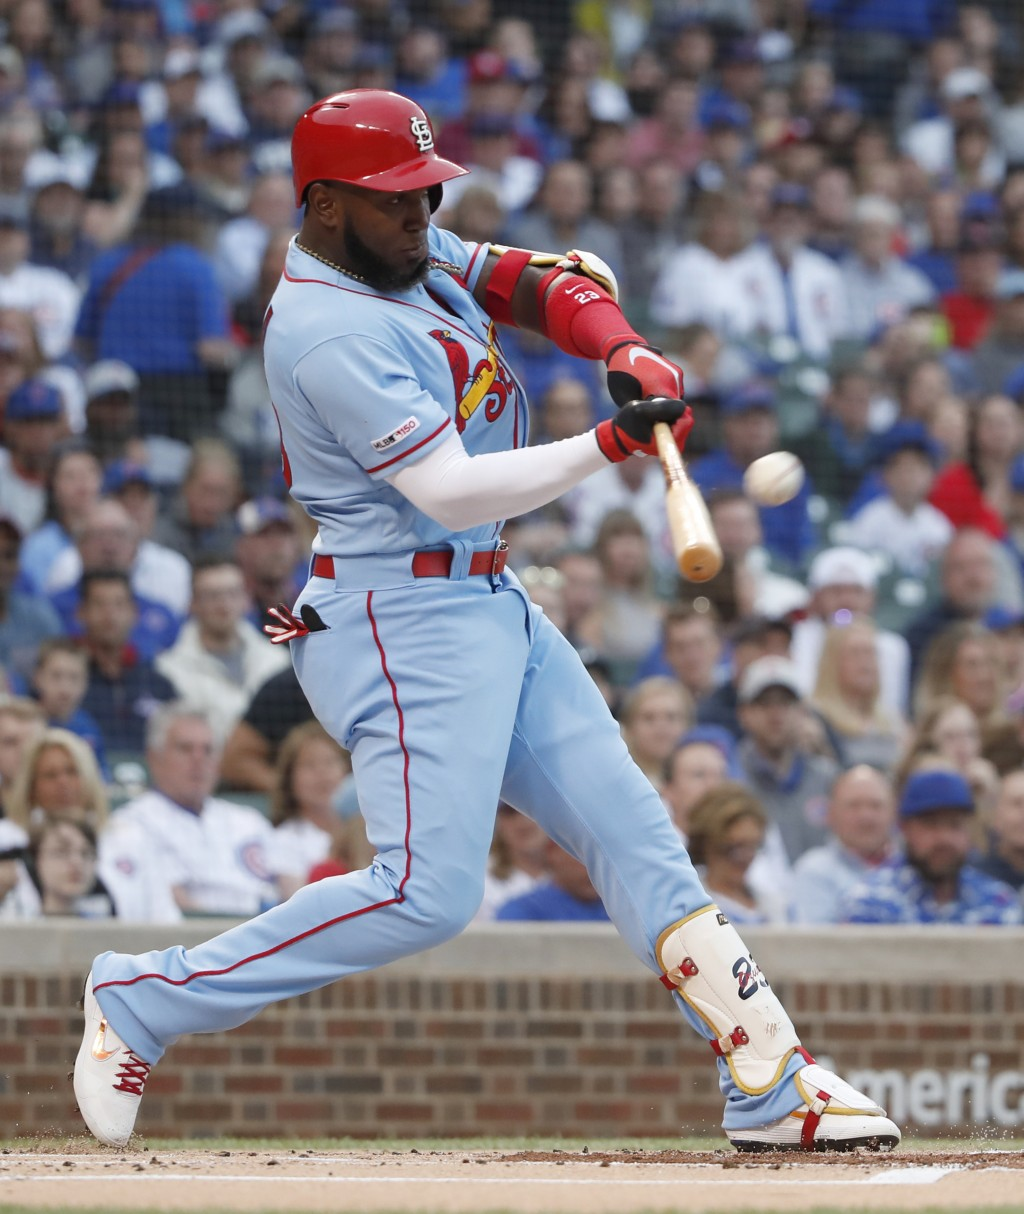 St. Louis Cardinals' Marcell Ozuna hits a three-run home run against the Chicago Cubs during the first inning of a baseball game Saturday, June 8, 201...